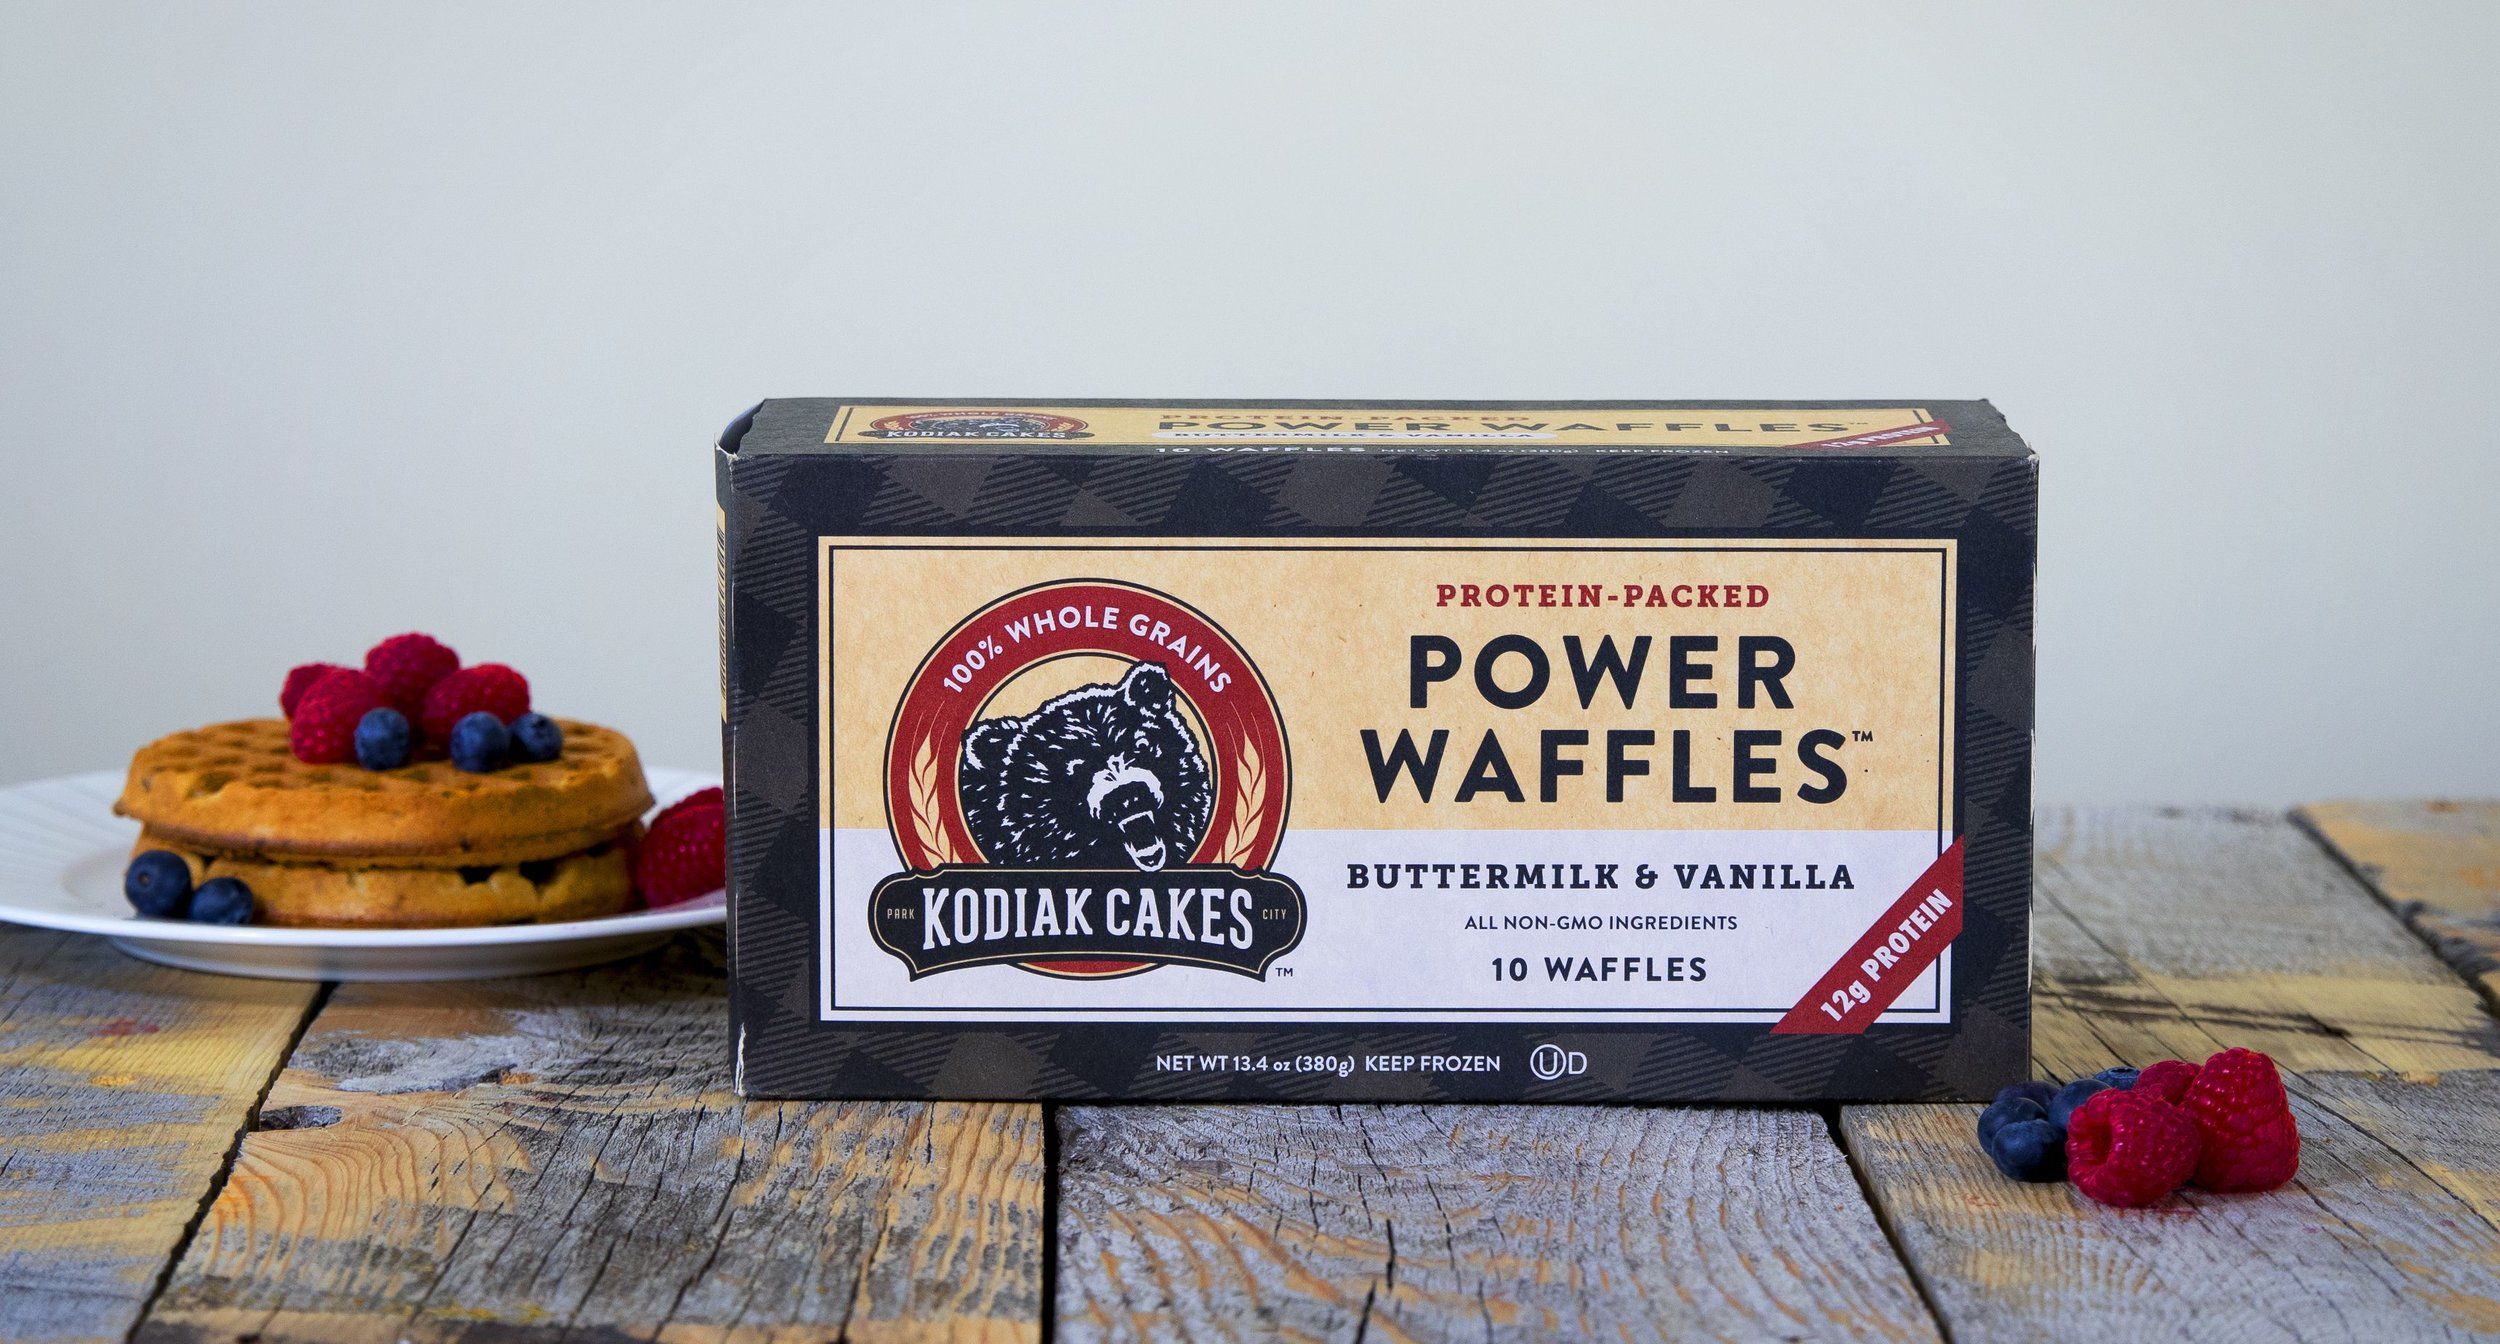 Photo of Power Waffles Packaging and Product